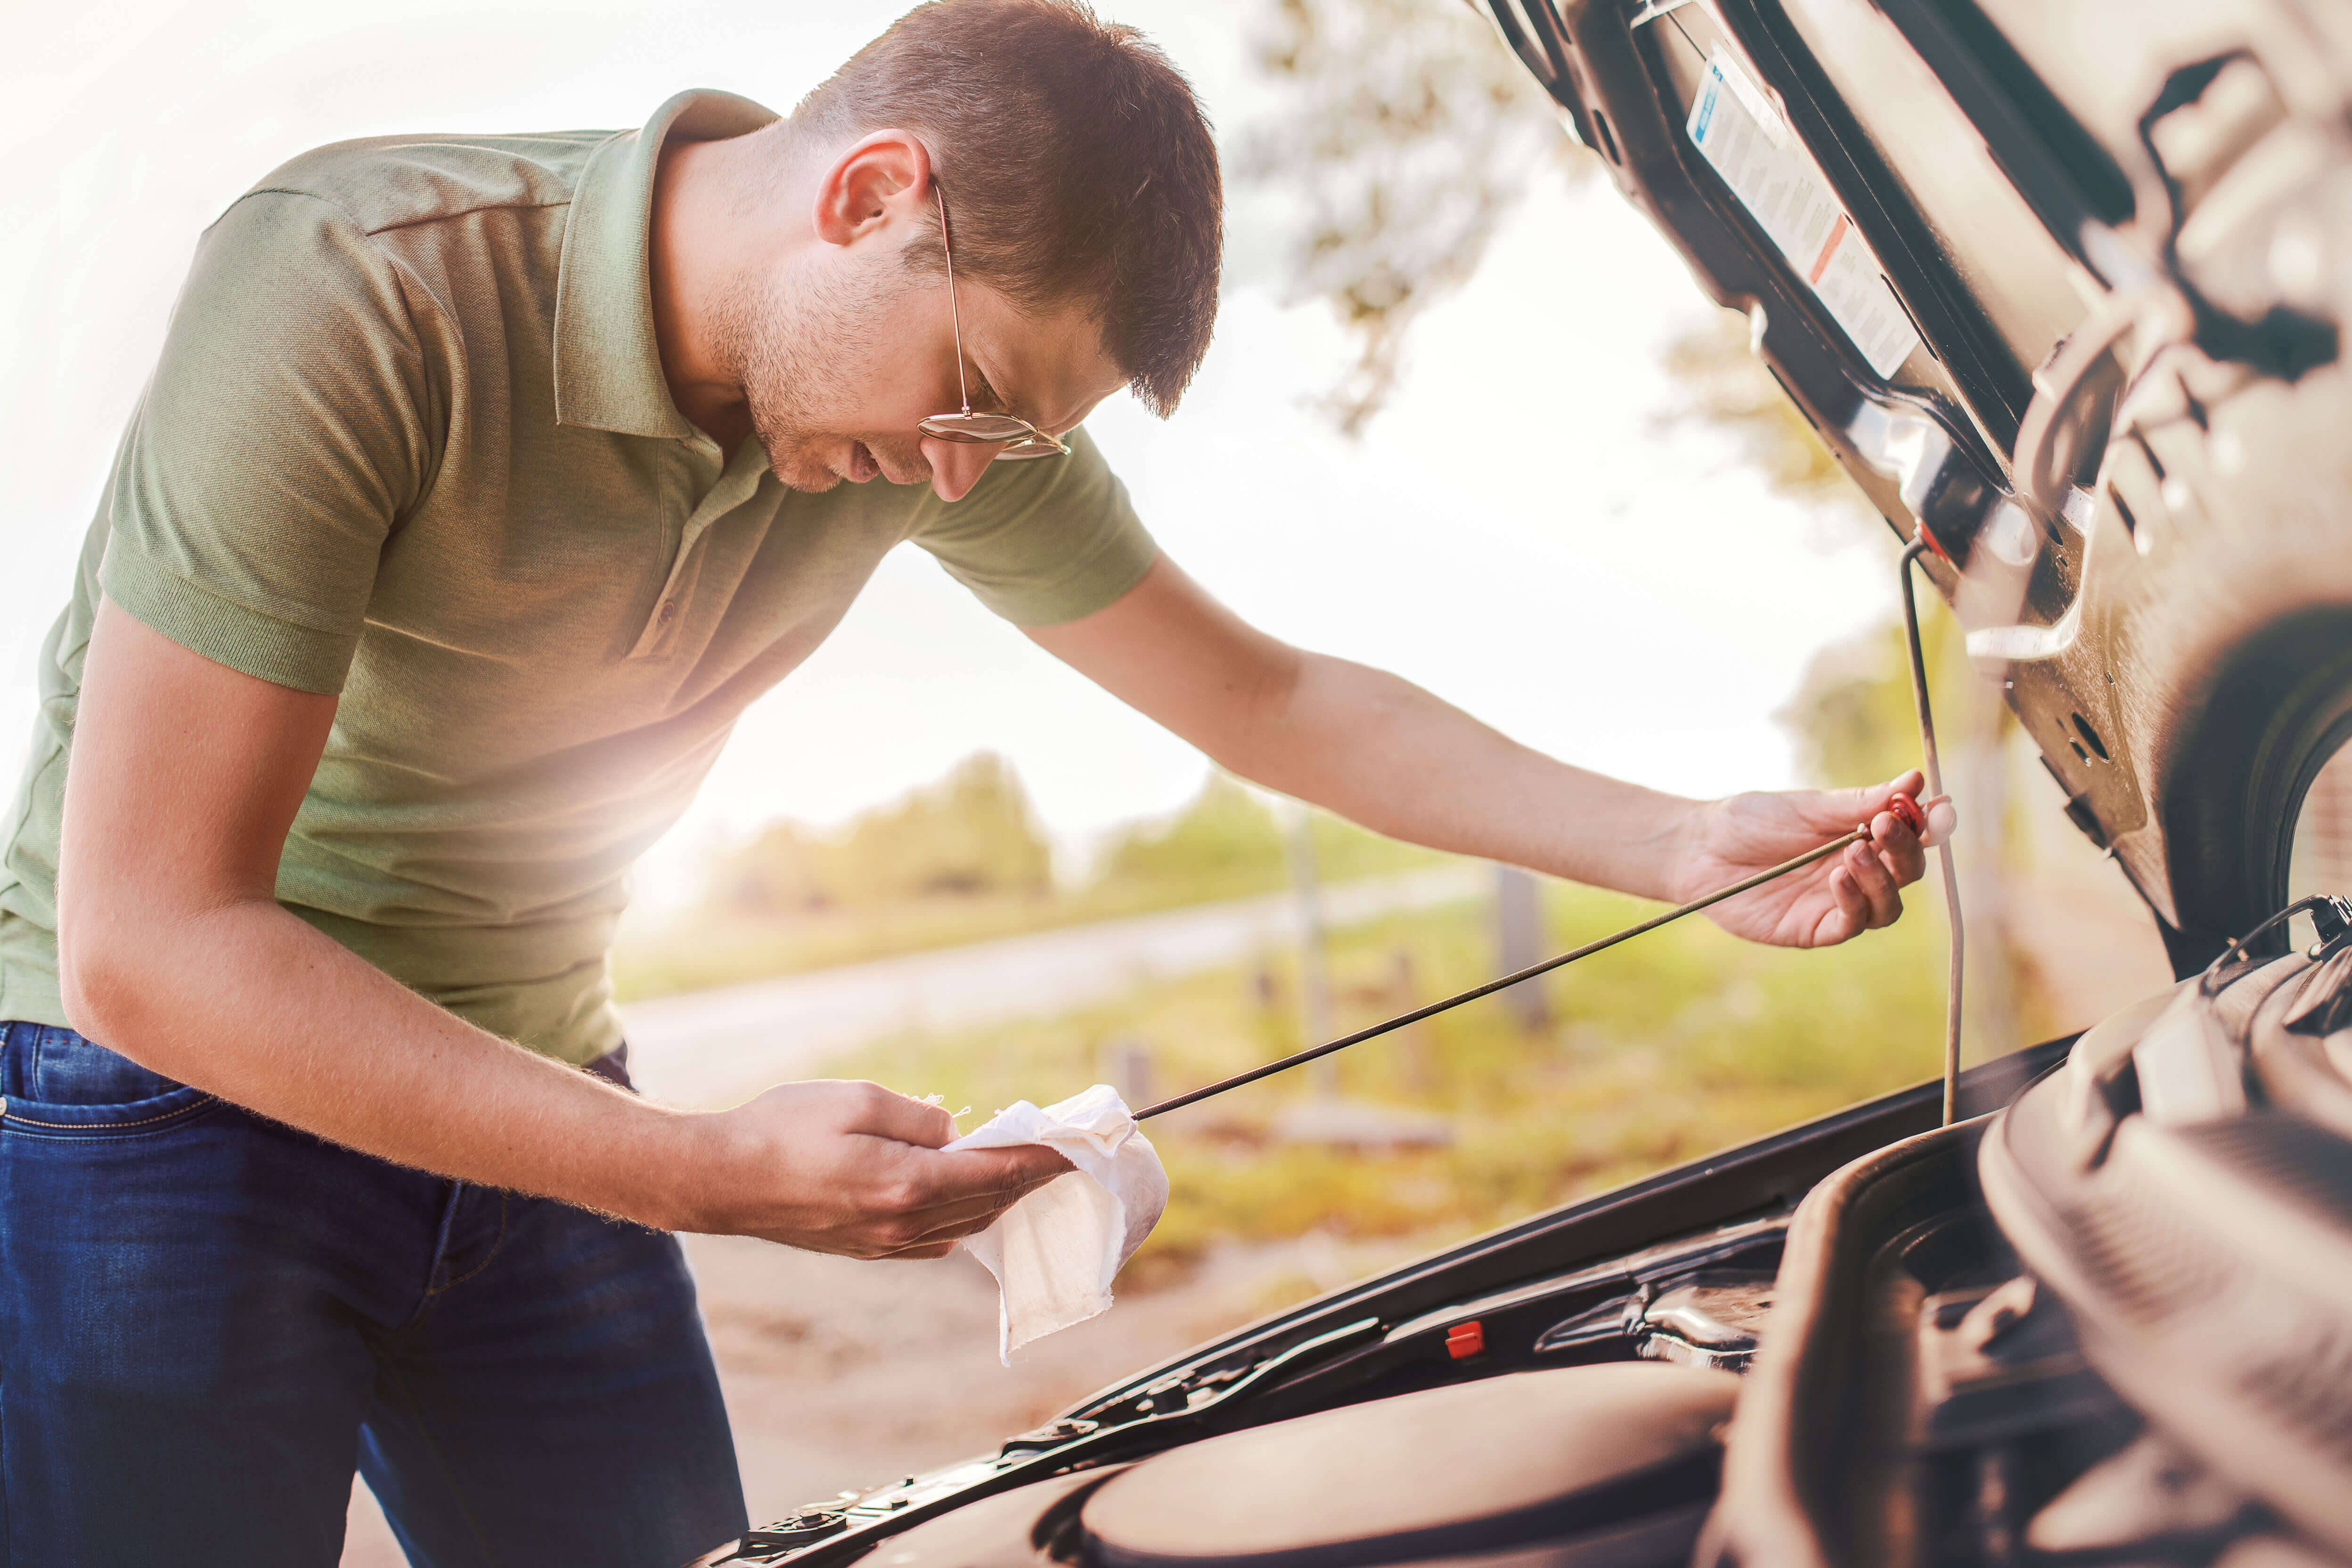 Tecnic Driving Schools give you five tips on how to properly maintain a vehicle.